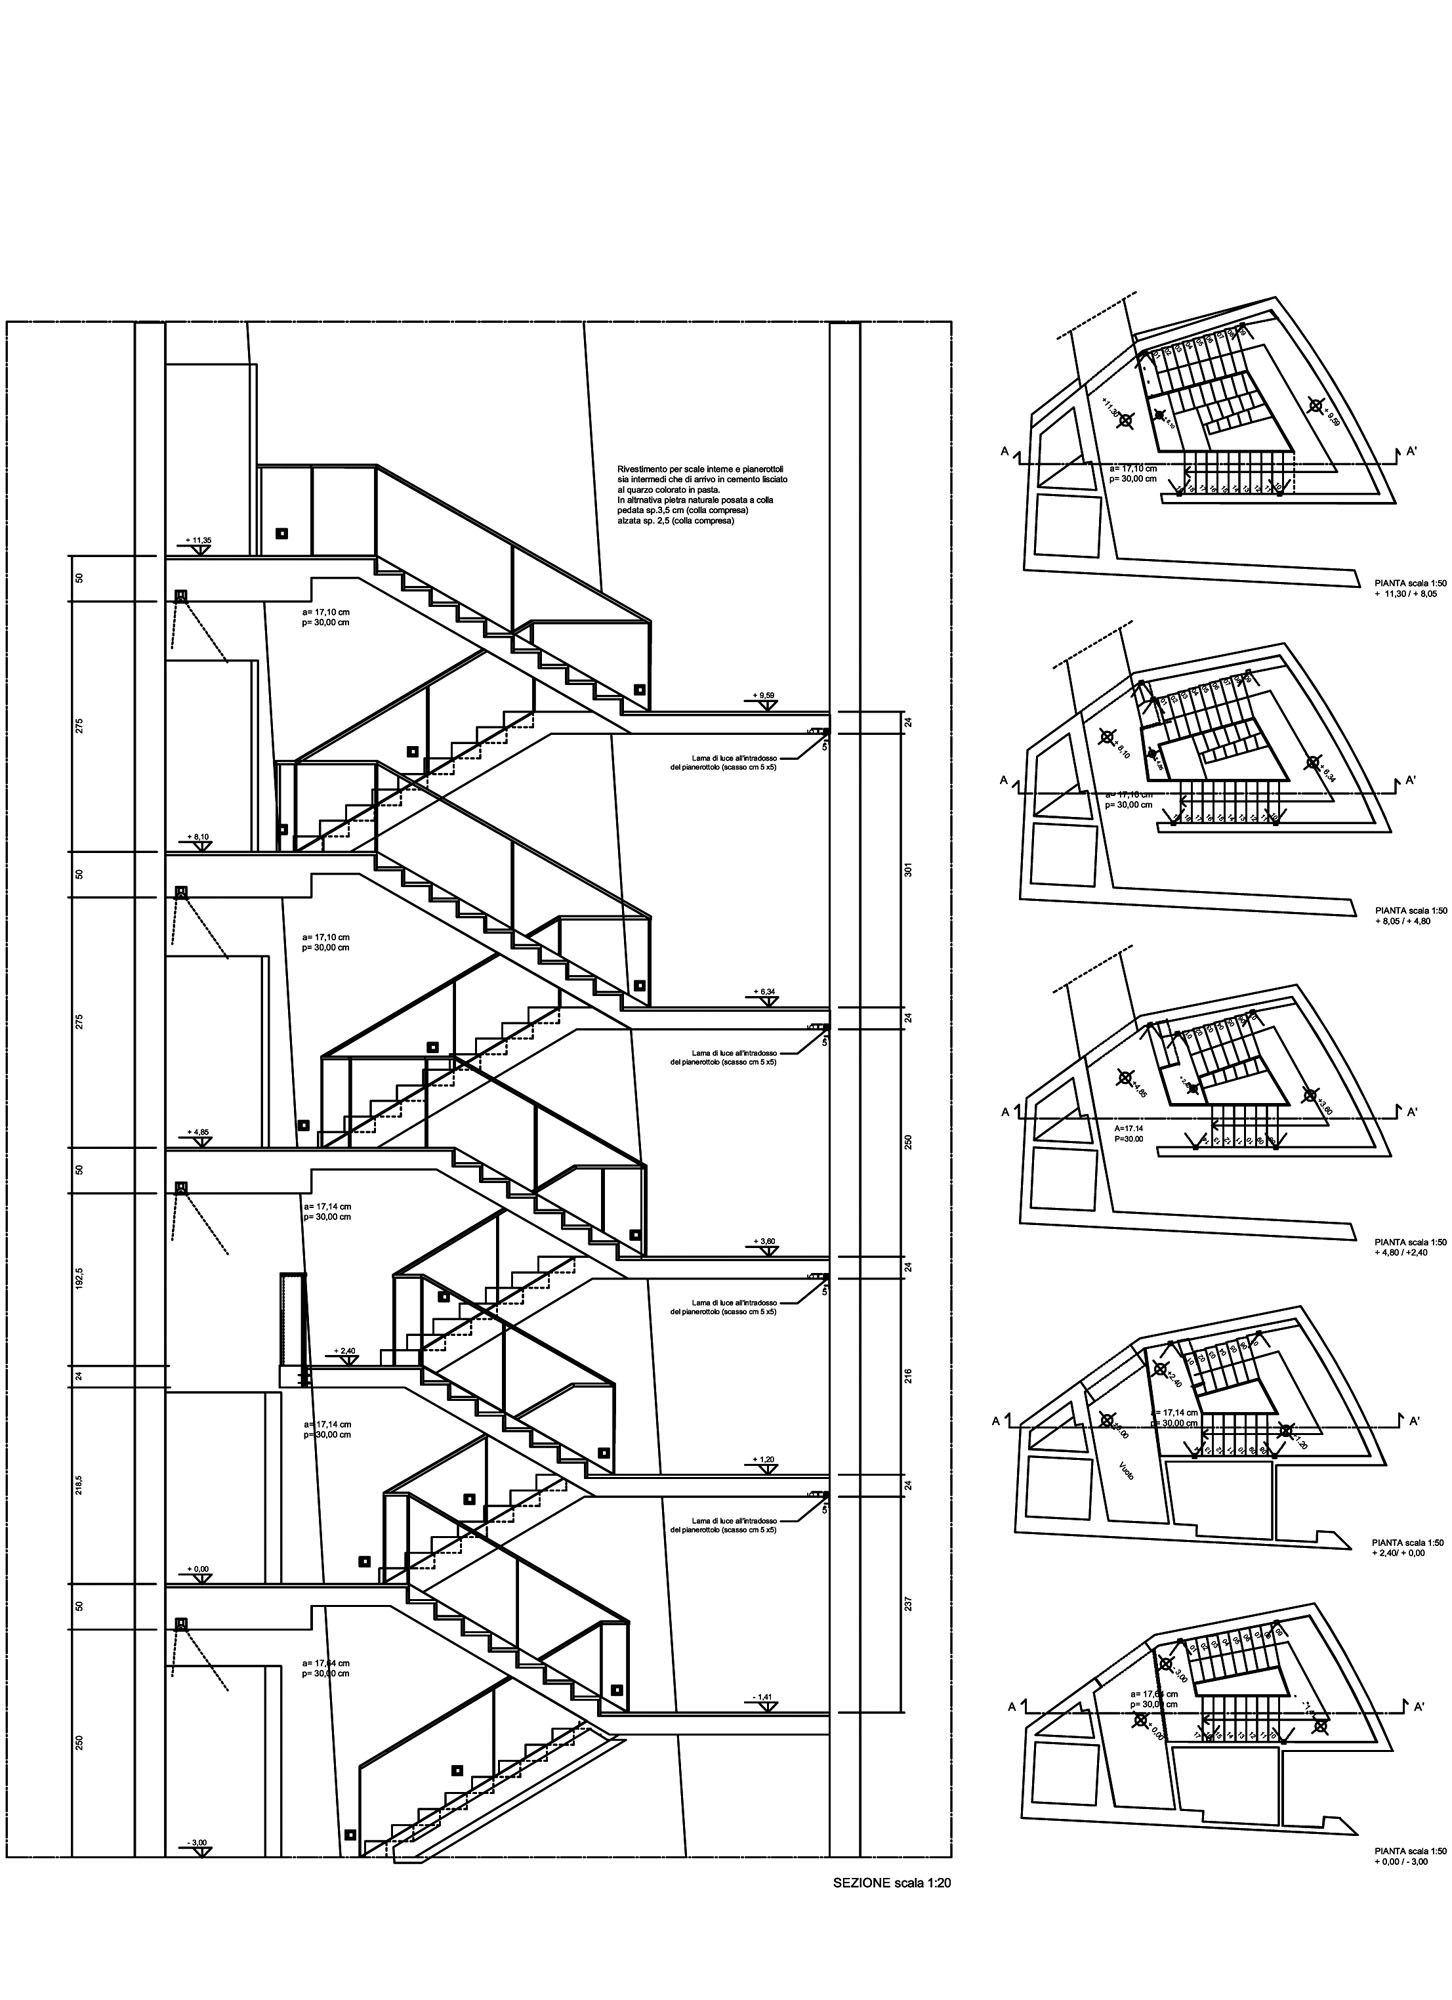 medium resolution of ex ducati mario cucinella architects construction documents construction drawings stairs diagram orthographic